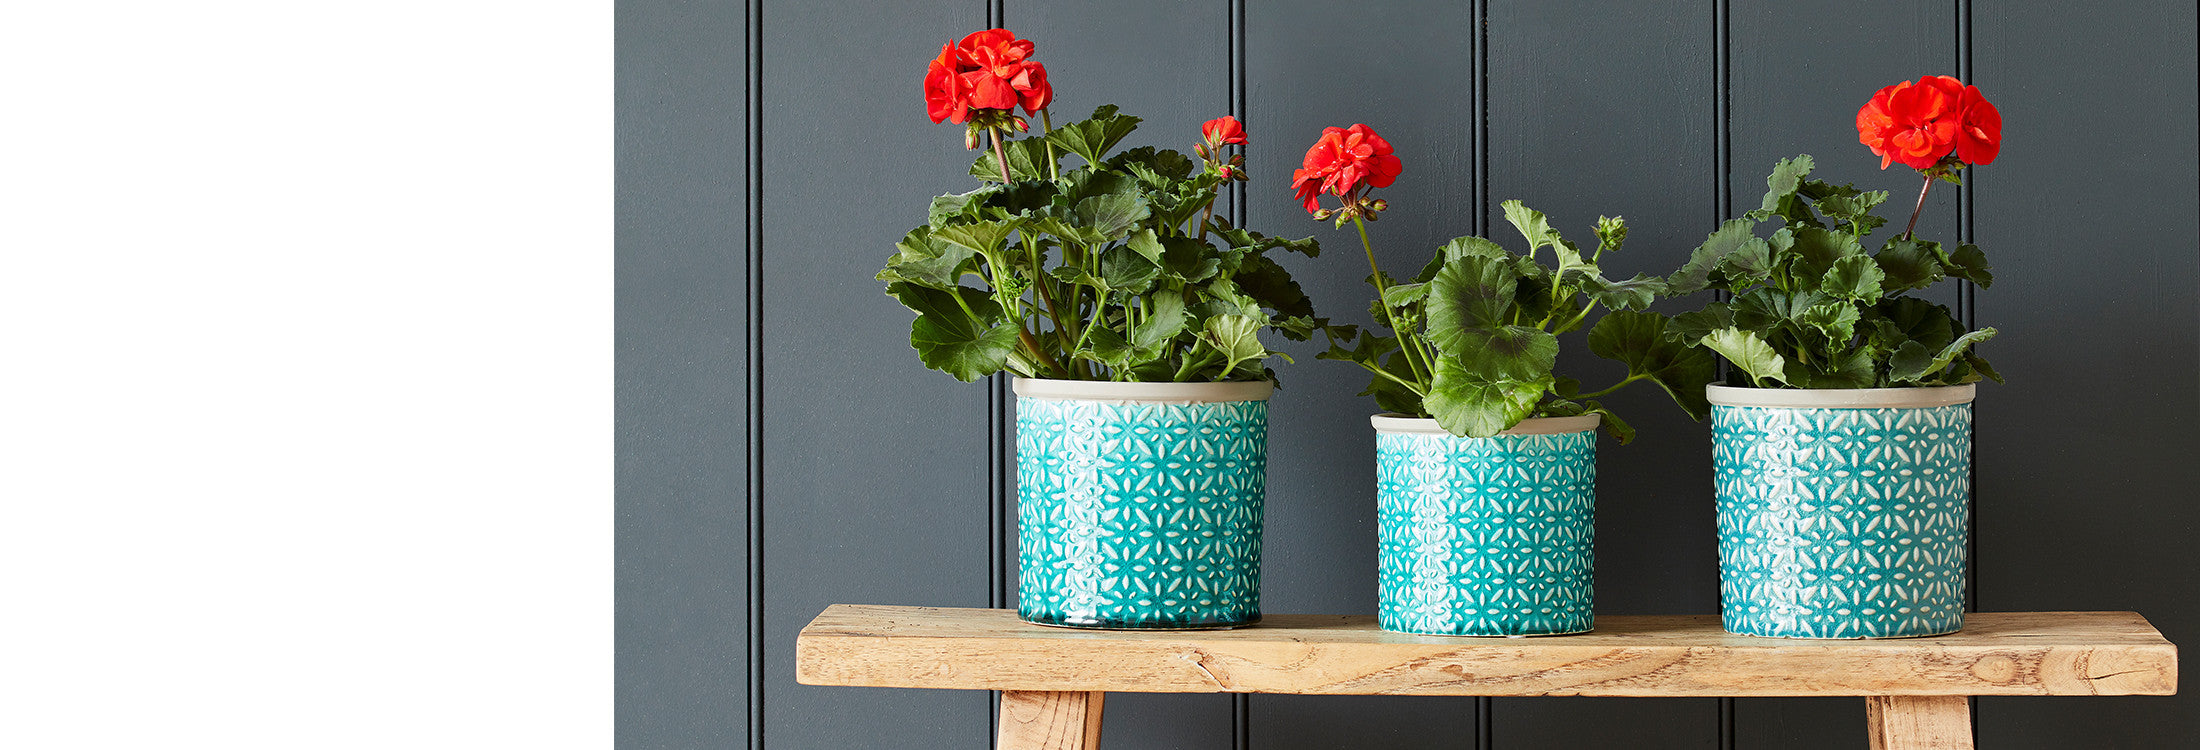 Indoor Pots & Vases | Burgon & Ball – Burgon and Ball on house plants in containers, tropical plants in vases, house plants in kitchen, green plants in vases, aquatic plants in vases, growing plants in vases, fake plants in vases, water plants in vases,